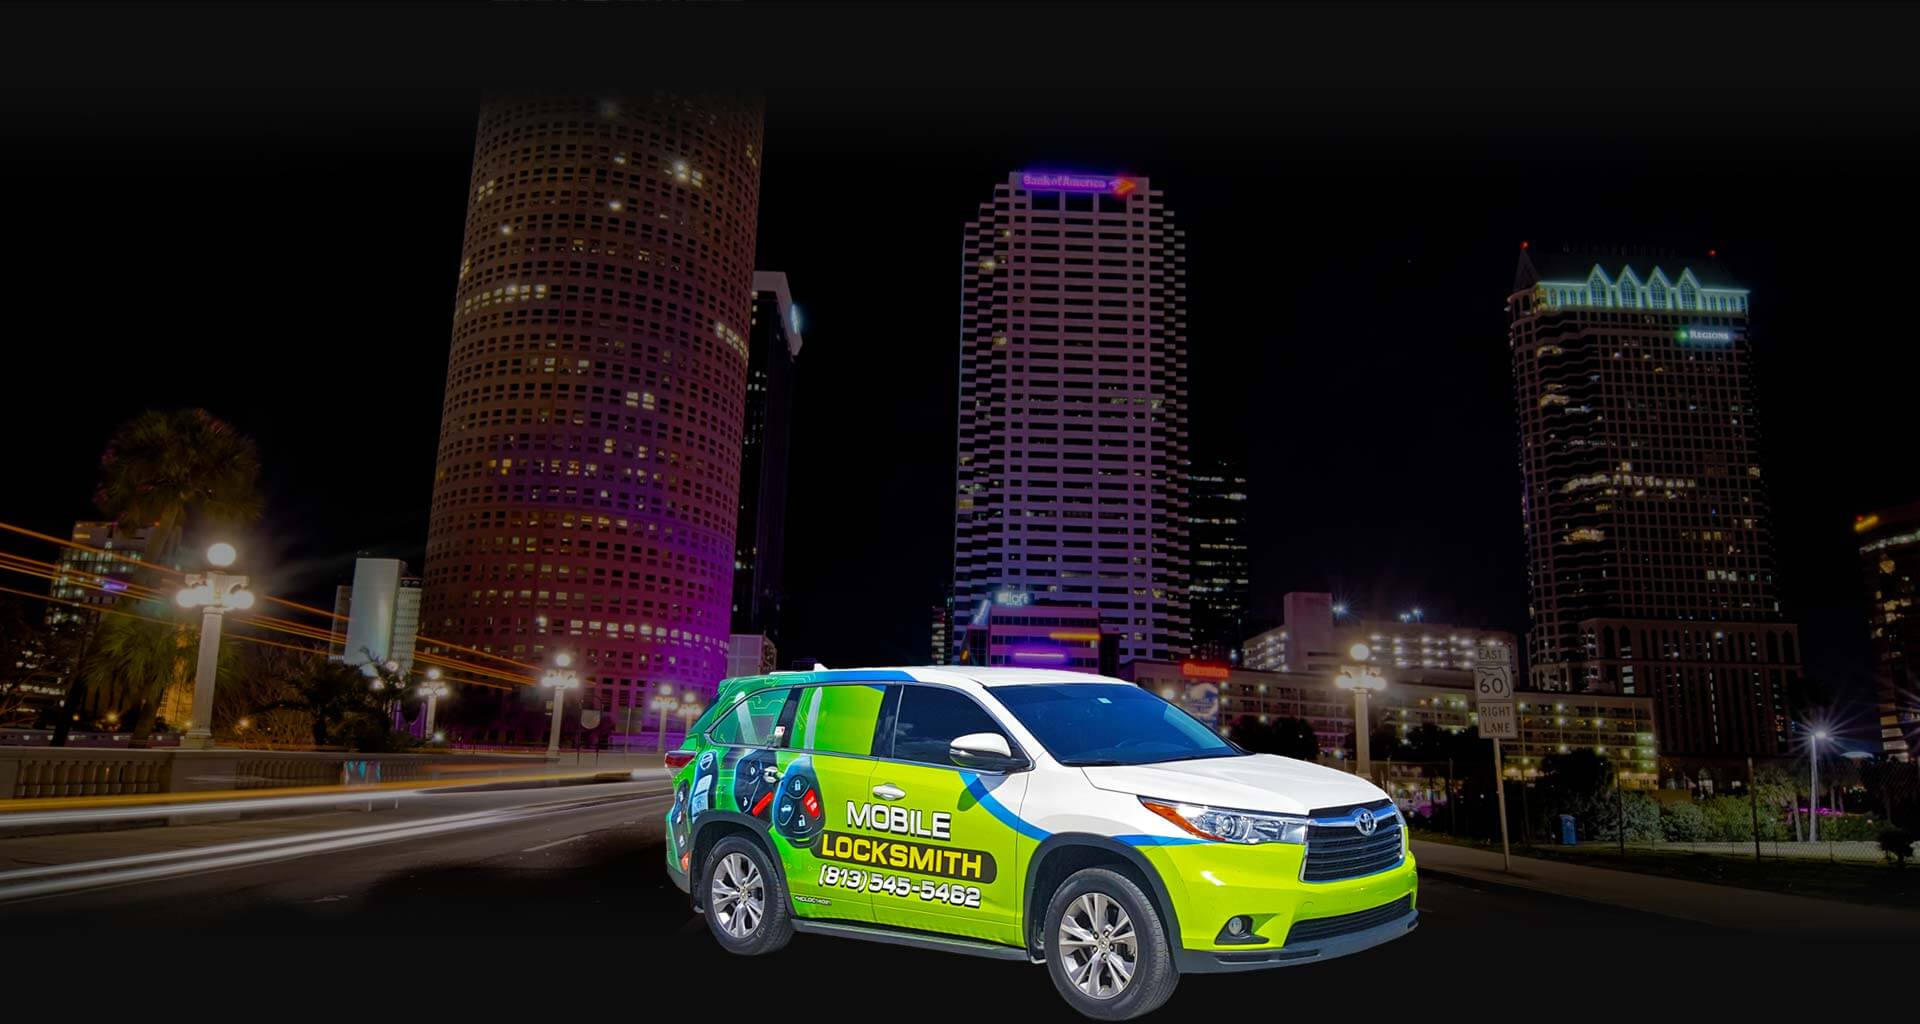 Cheap Lock & Key vehicle in front of Tampa, FL skyline.